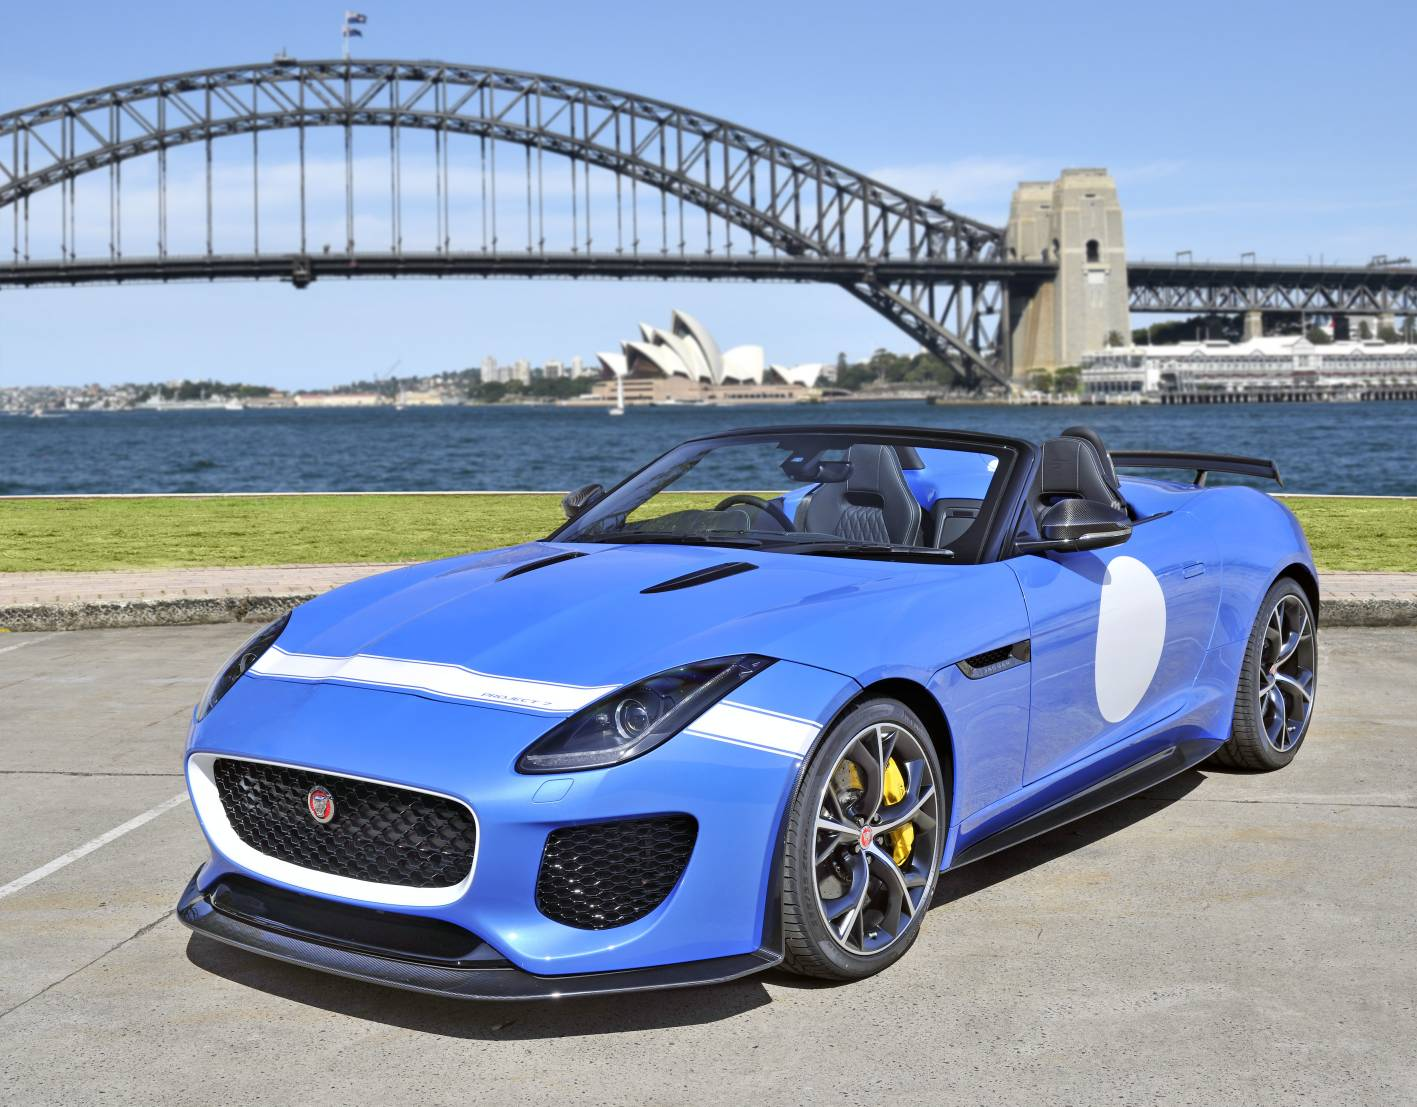 limited edition jaguar f type project 7 destined for australia. Black Bedroom Furniture Sets. Home Design Ideas